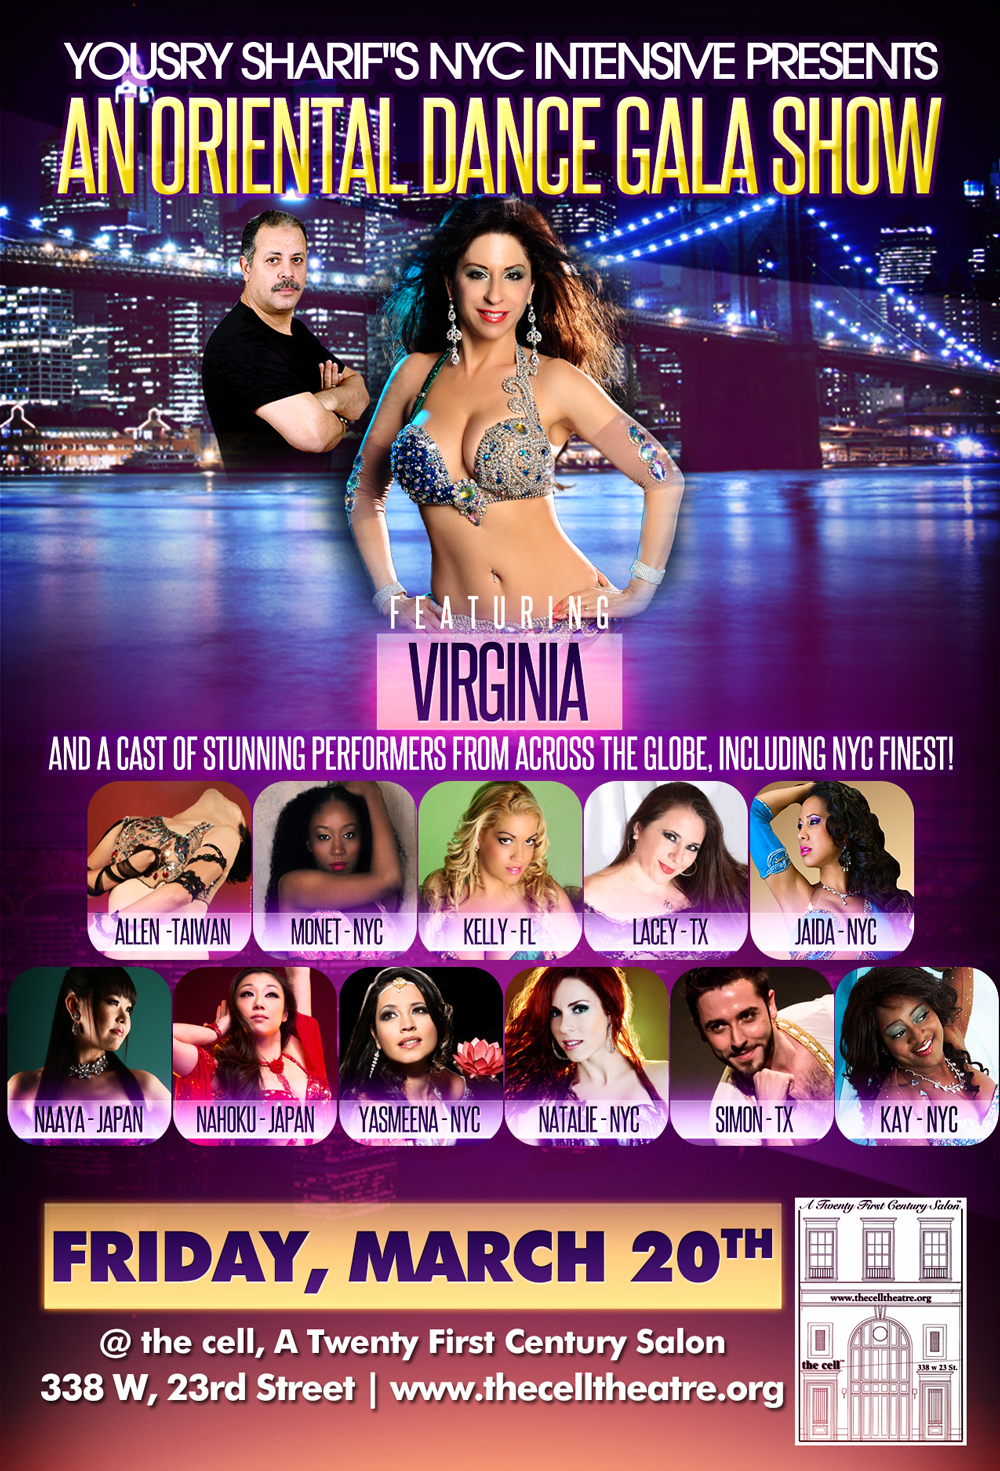 "Yousry Sharif presents An Oriental Gala Show bringing NYC the ""Best in Bellydance"",  starring Virginia,  world renowned superstar and protege of Mr. Sharif,  as well as stunning performances from his dancers from around the world including NYC's finest!"